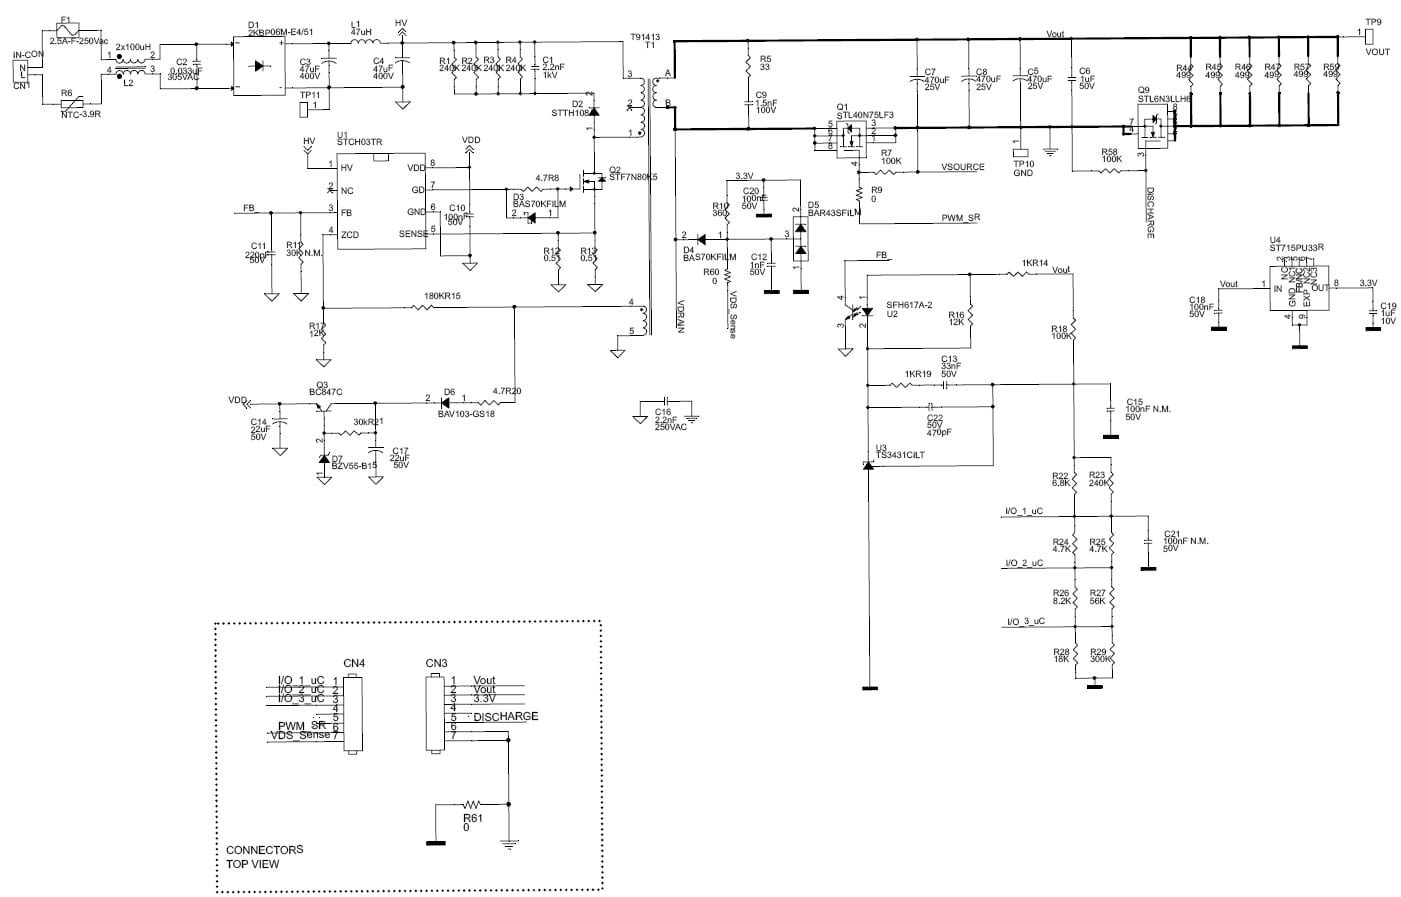 45W USB Type-C™ Power Delivery Adapter Reference Design with ... Usb Power Schematic on usb power table, usb power block, usb power adapter, usb power supply, usb power switch, usb power voltage, ac schematic, audio schematic, usb power pinout, usb power wires, usb power cable, usb power output, usb power battery, usb power line, motherboard schematic, usb powered monitor hdmi, usb power bank, usb power monitor, usb power code, usb power board,